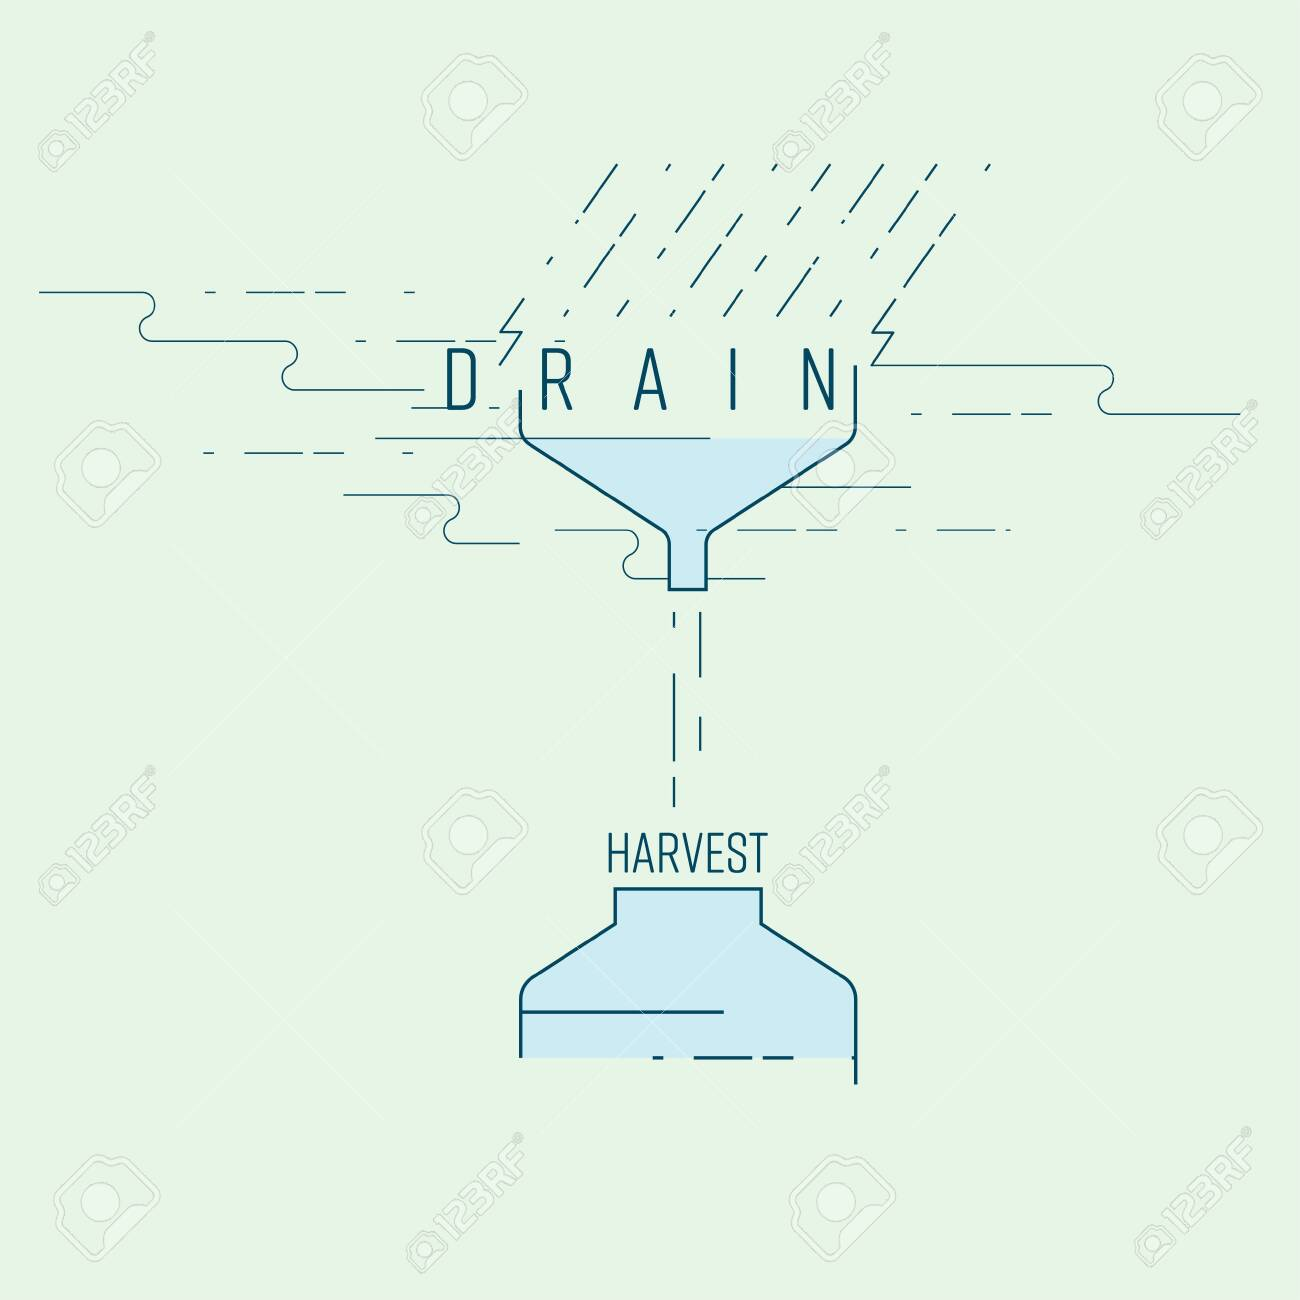 Rain Word Separated From Spelling Of Drain Bracketed In Funnel Royalty Free Cliparts Vectors And Stock Illustration Image 151773392